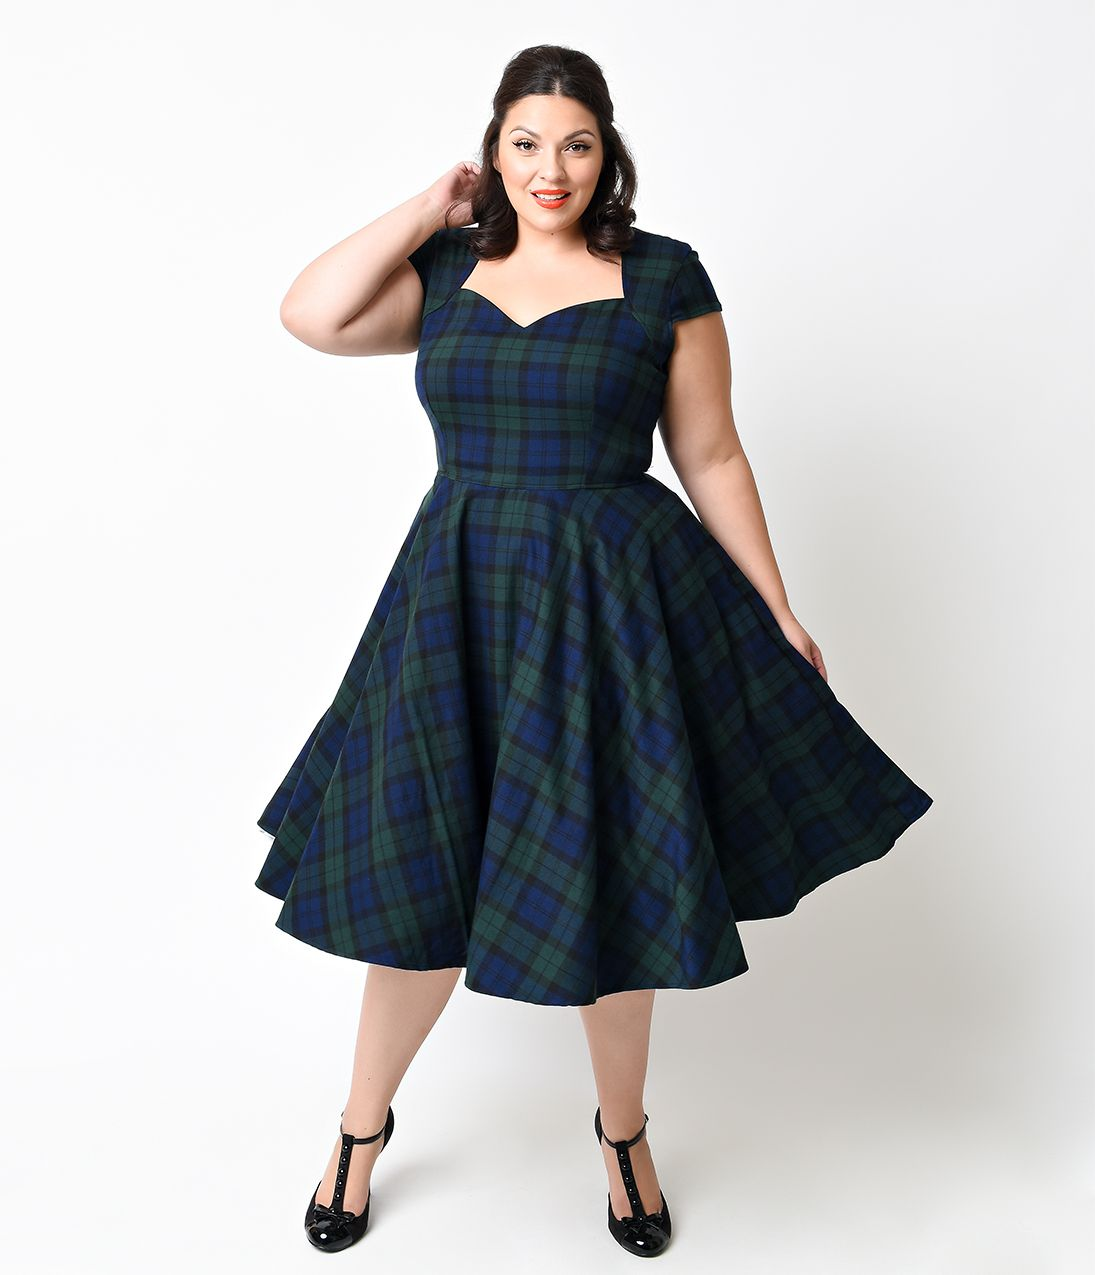 5d2679894b06f1 Hell Bunny 1950s Plus Size Green Dublin Tartan Aberdeen Swing Dress $108.00  AT vintagedancer.com